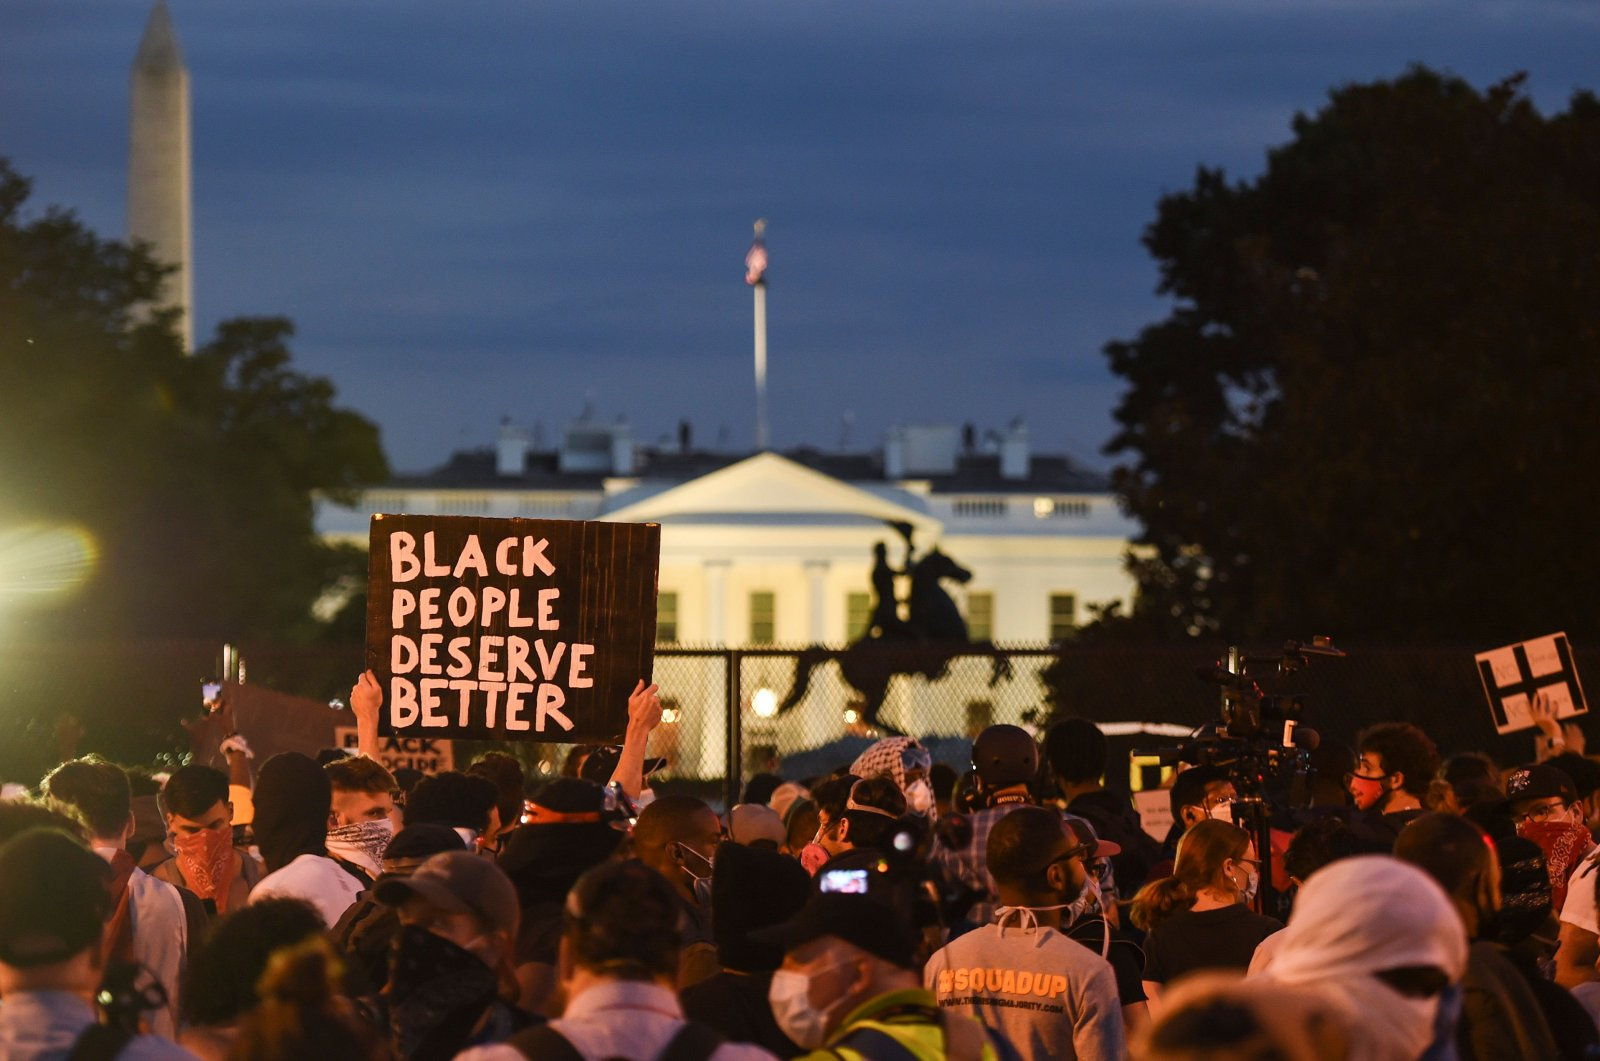 Demonstrators protest the death of George Floyd near Lafayette Square across from the White House, Washington, D.C., June 2, 2020. (AFP Photo)